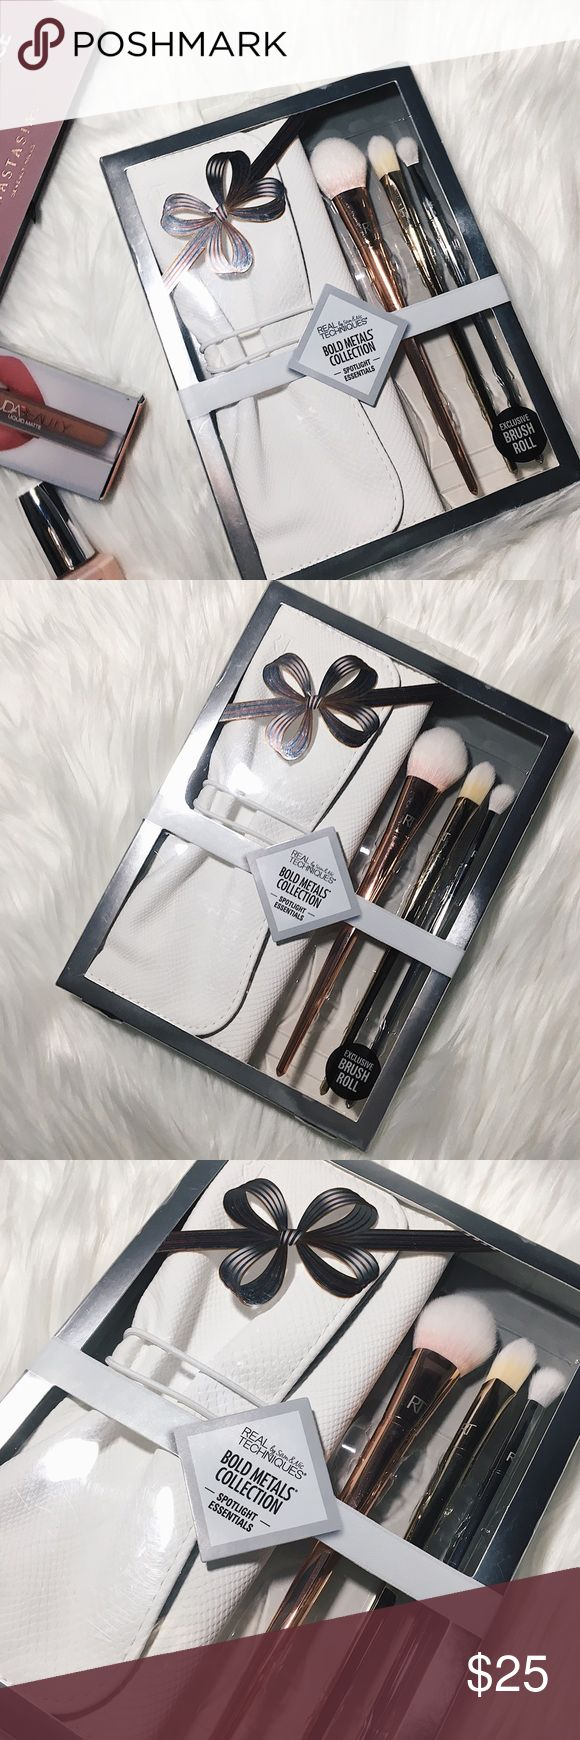 NWT Real Techniques Bold Metals Collection Set NWT Real Techniques Bold Metals Collection Spotlight Essentials make up brush set. Never opened or used. Includes the 300 TAPERED BLUSH brush, 102 TRIANGLE CONCEALER brush, 203 TAPERED SHADOW brush & an exclusive brush roll to store your brushes. Brushes are designed to work with cream, powder & liquid makeup. Box is sealed and has never been opened. Real Techniques Makeup Brushes & Tools